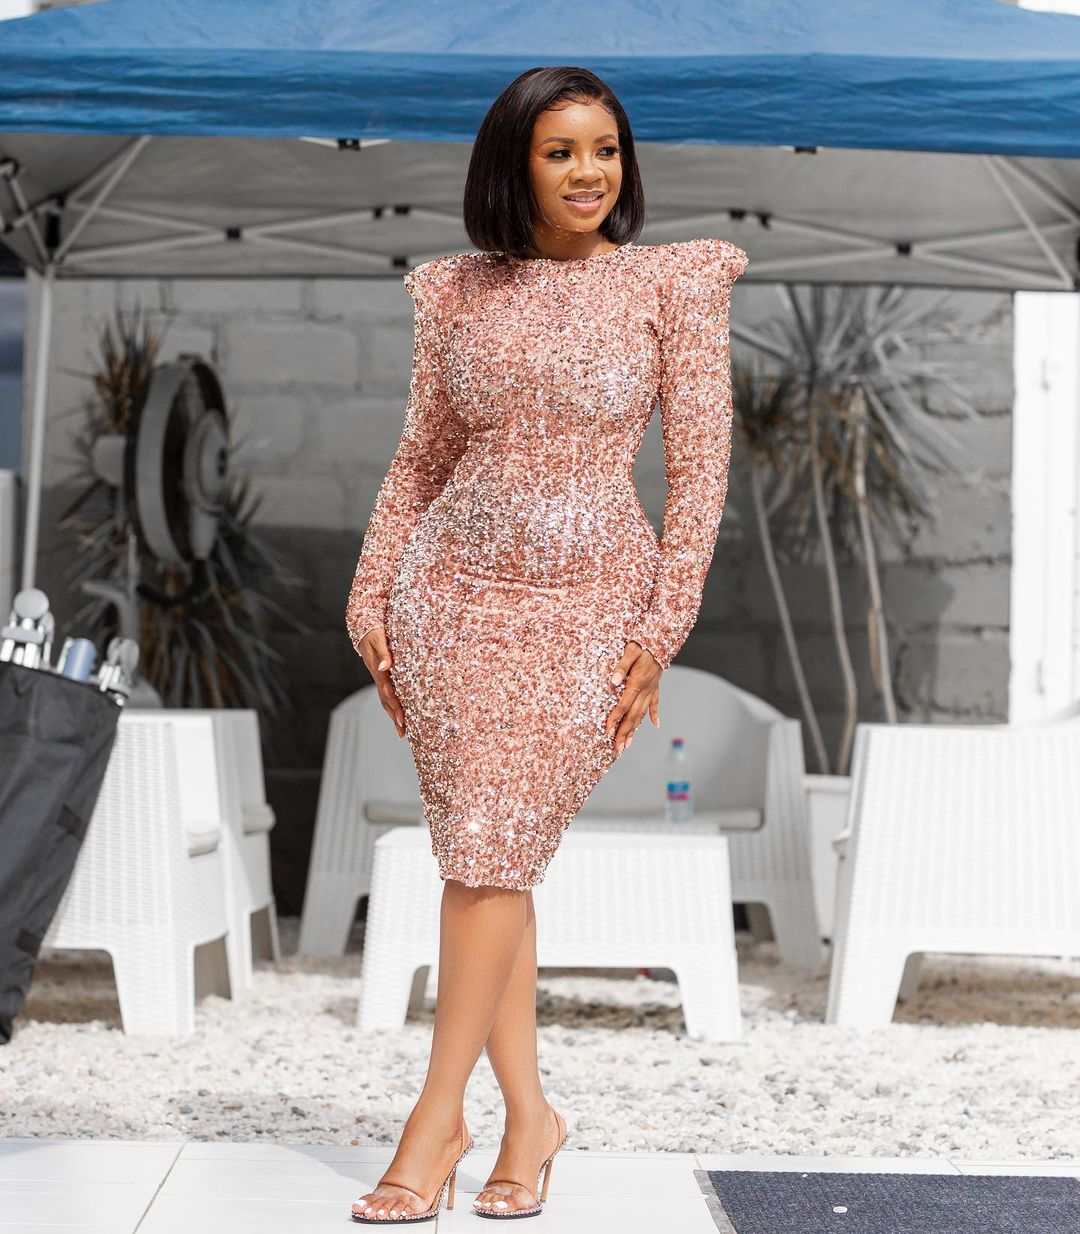 Serwa Amihere Keeps It Sleek With A Gown